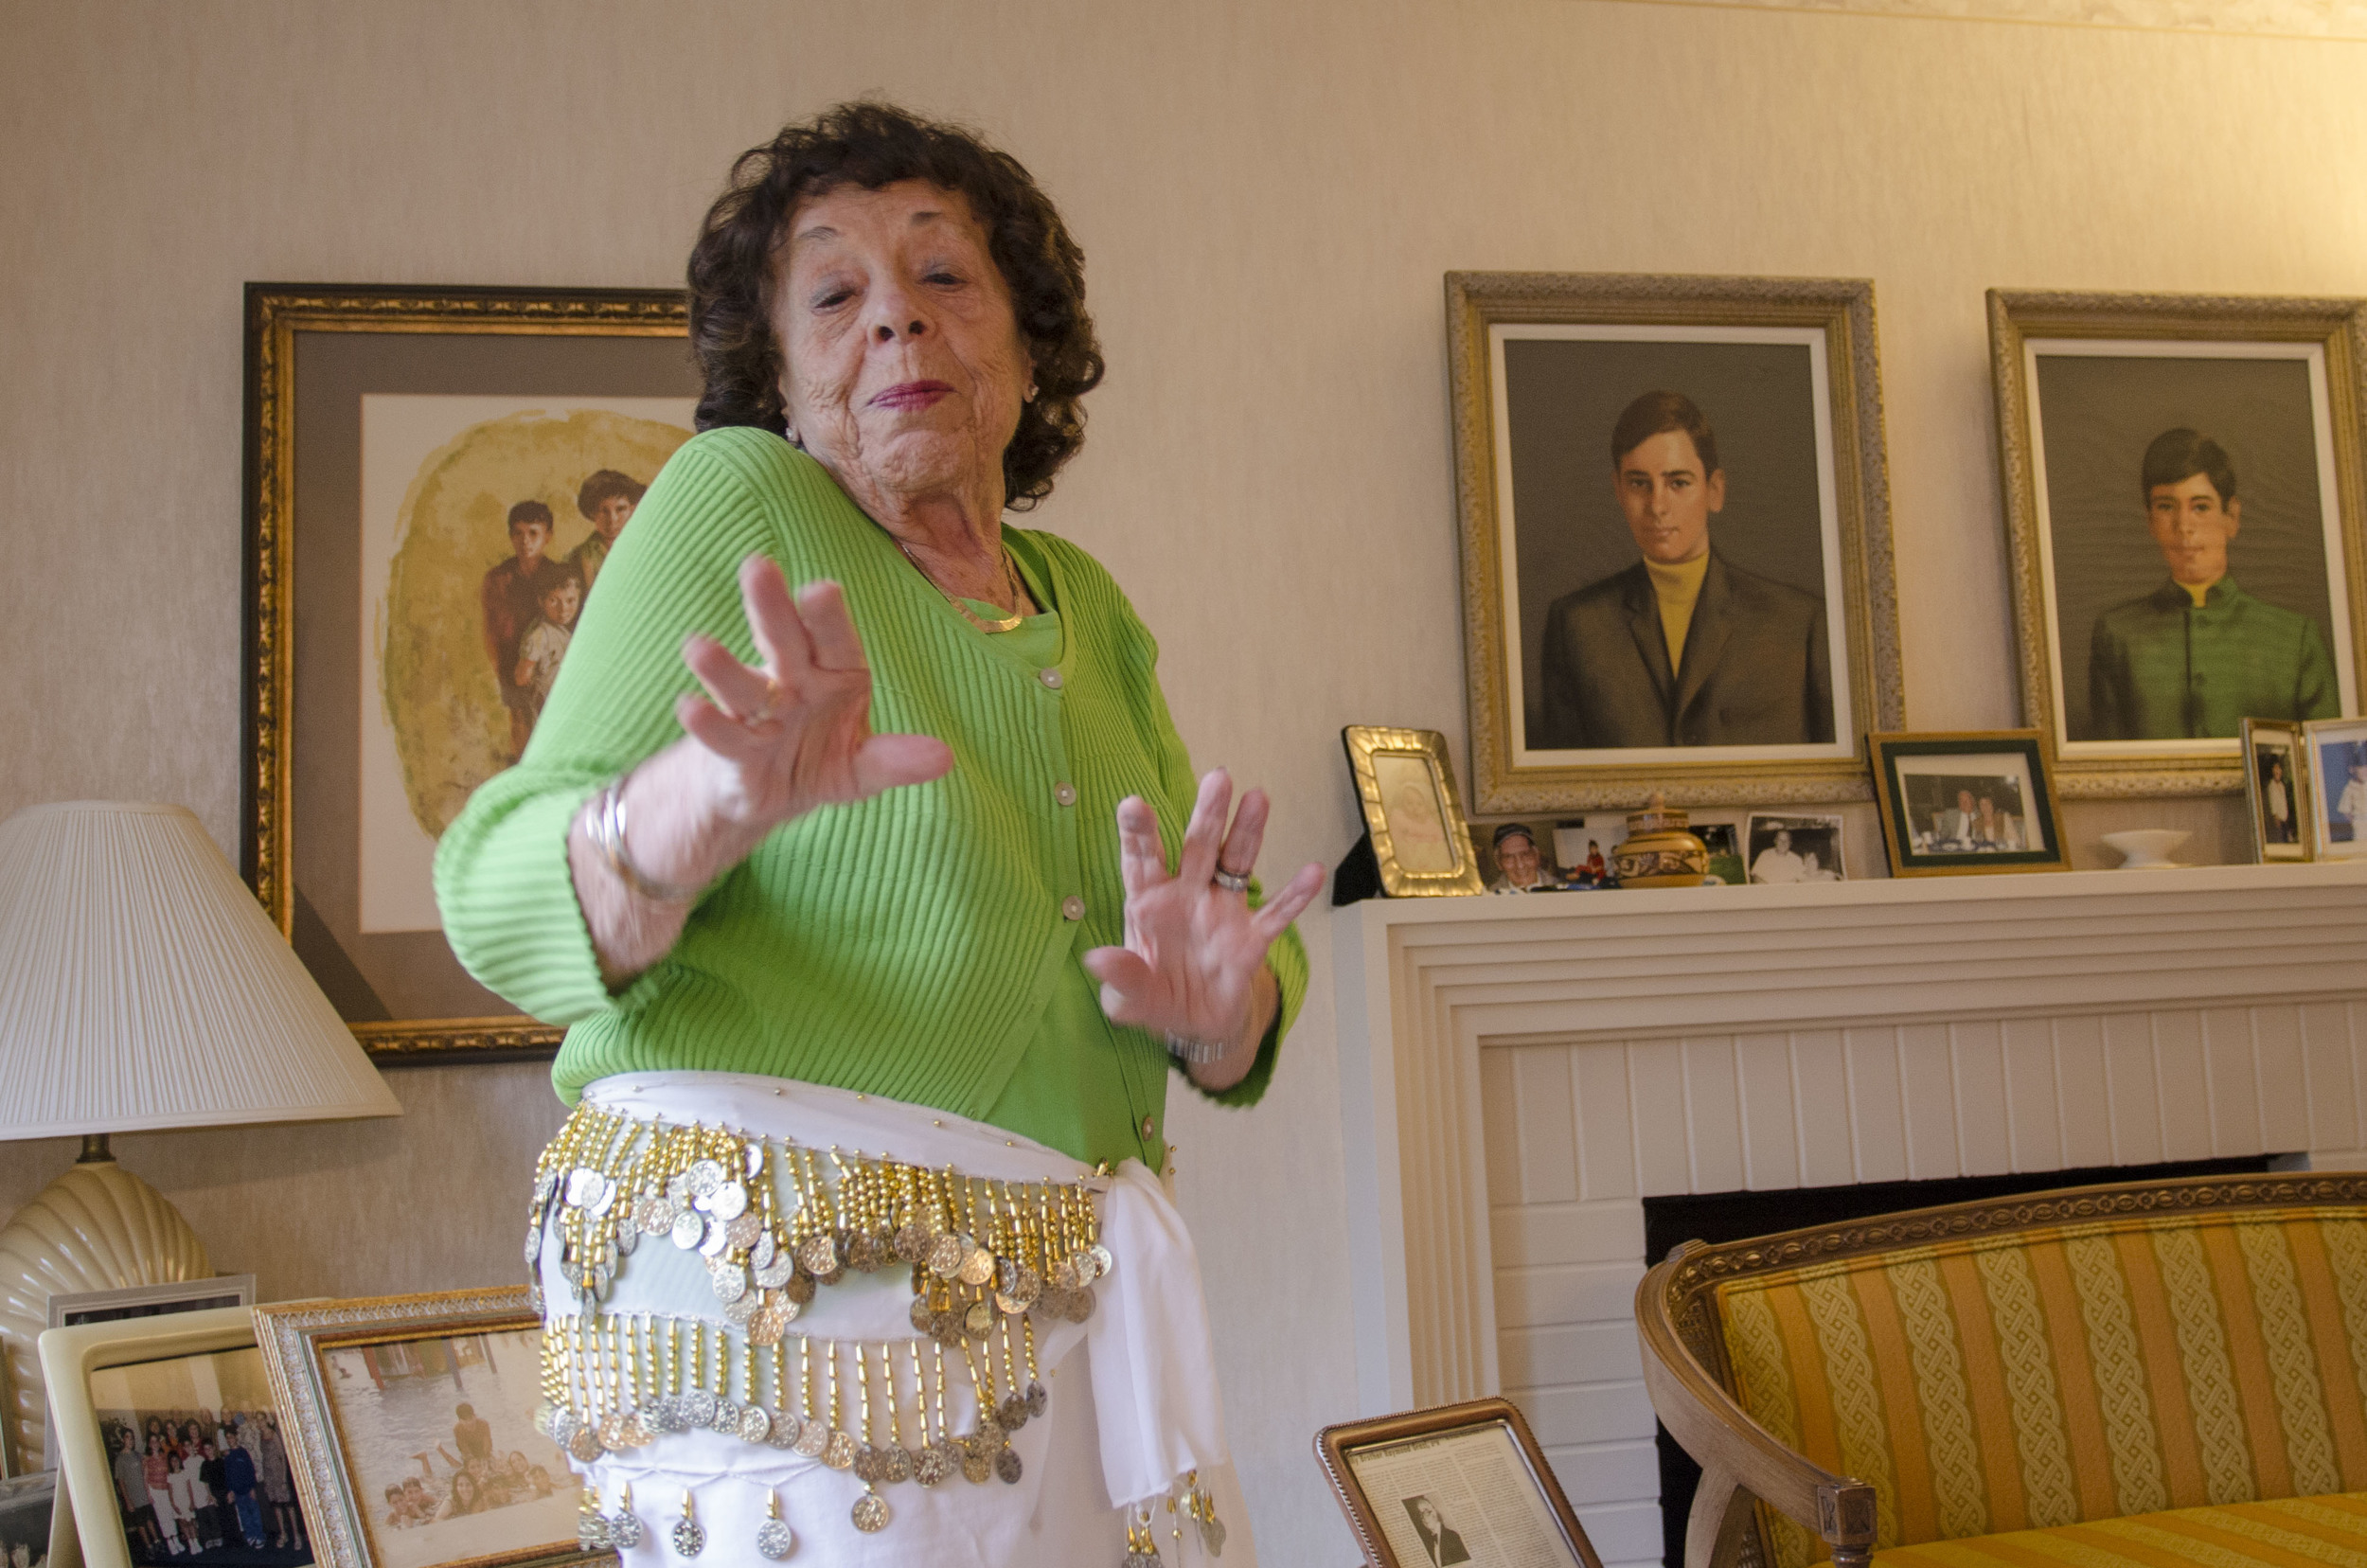 Showing off her new jingling coin skirt, Emma Pahuskin shimmies around her living room in West Hartford, CT.